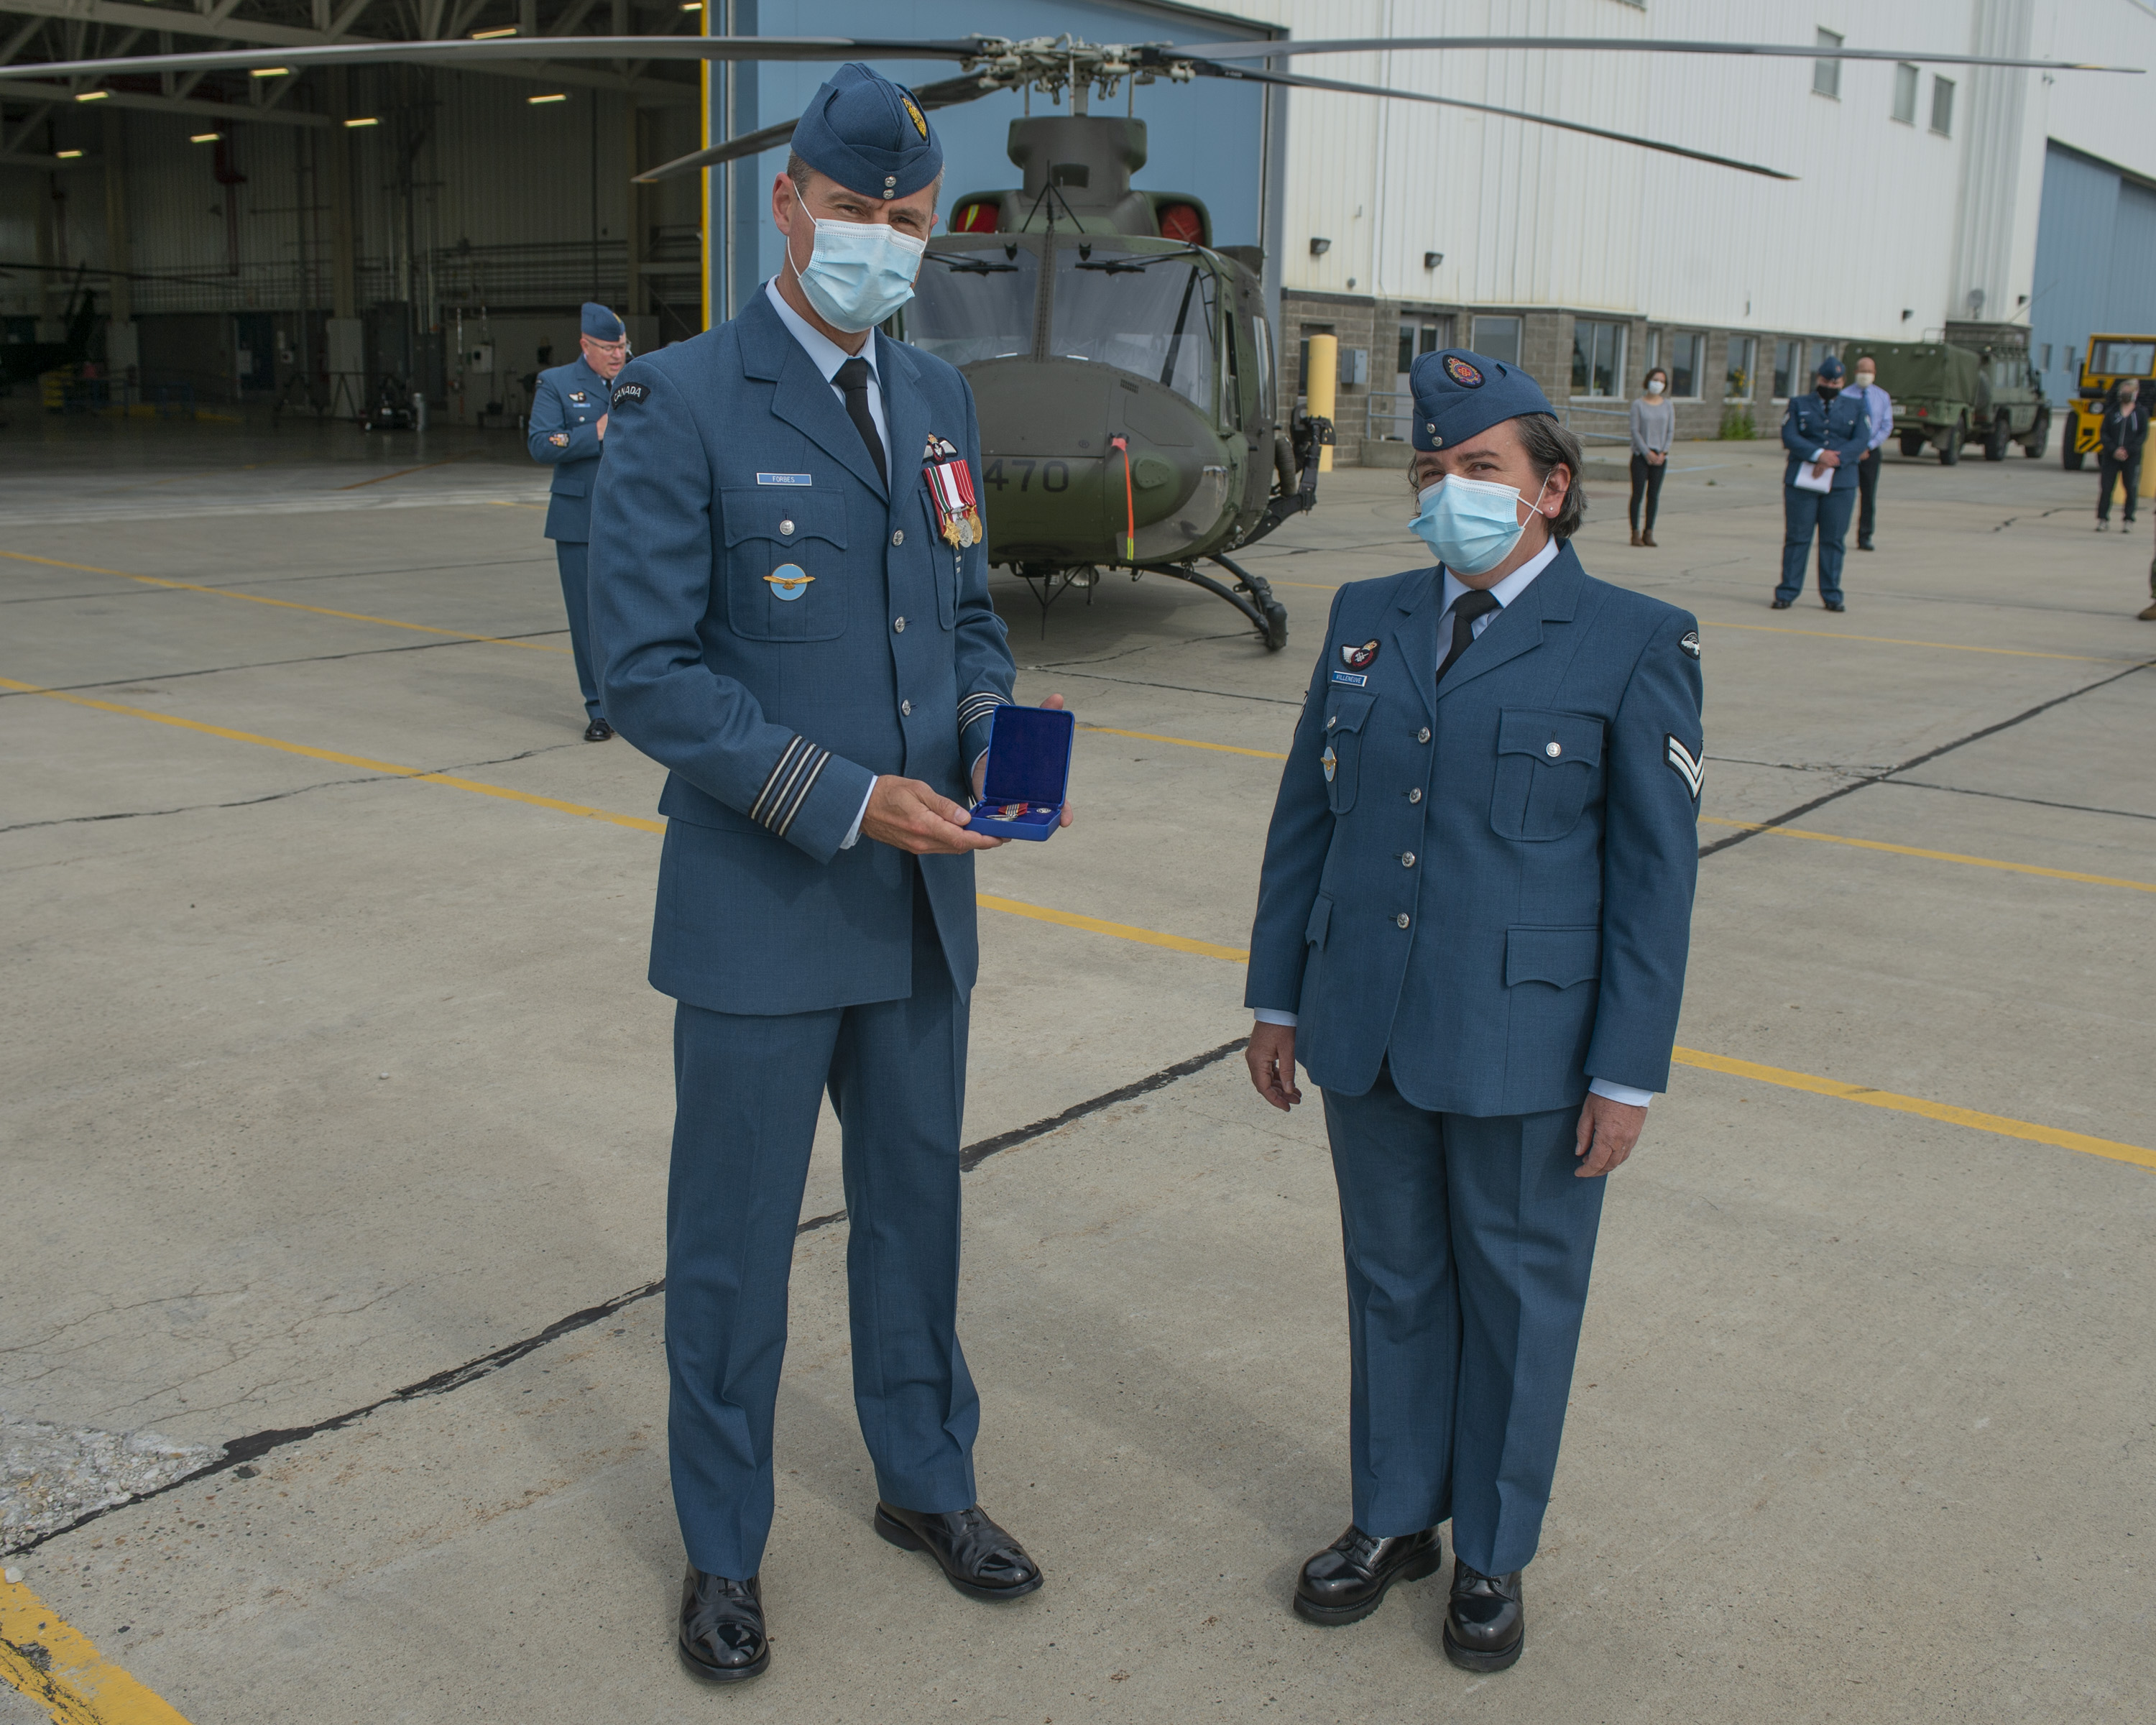 A man and a woman wearing blue military uniforms stand in front of a hangar and a helicopter. The man presents the woman with a medal in a little blue case.